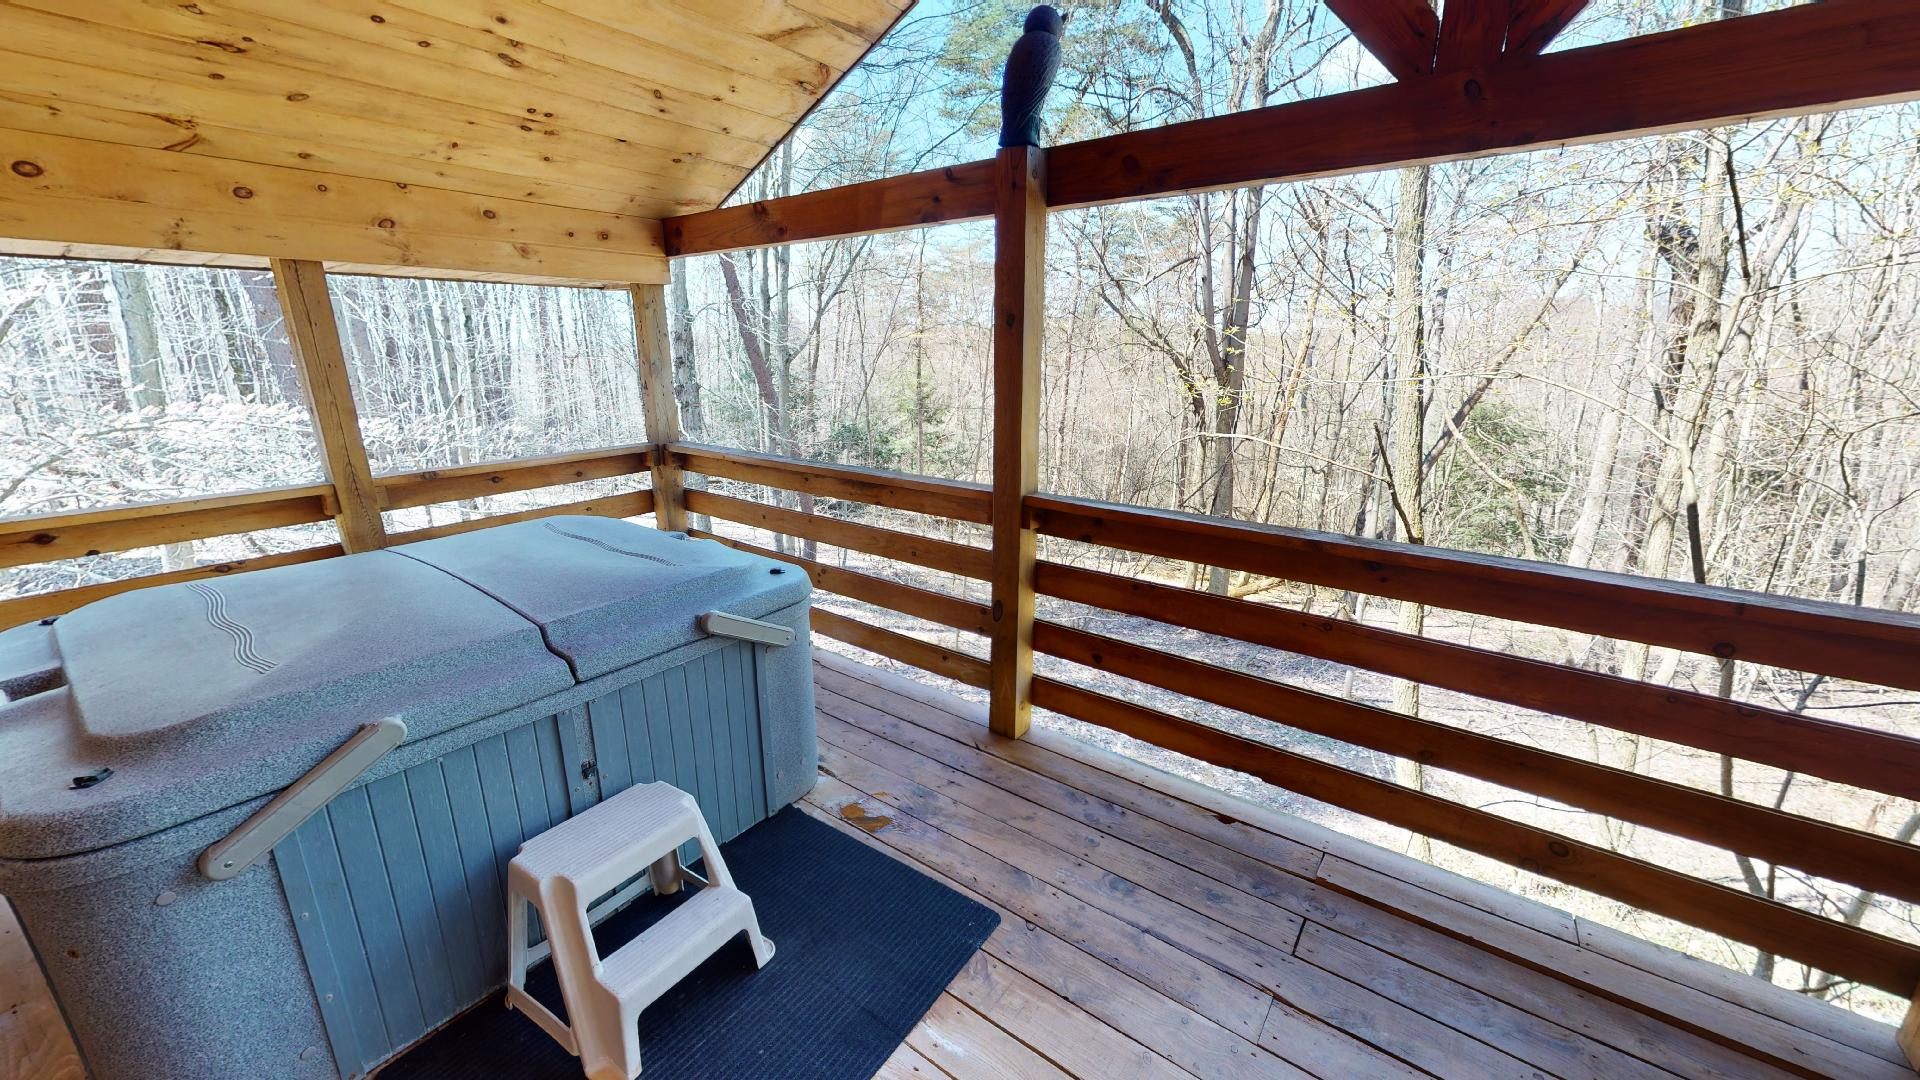 The Overlook Hot Tub - Two-person hot tub situated on the private back deck.